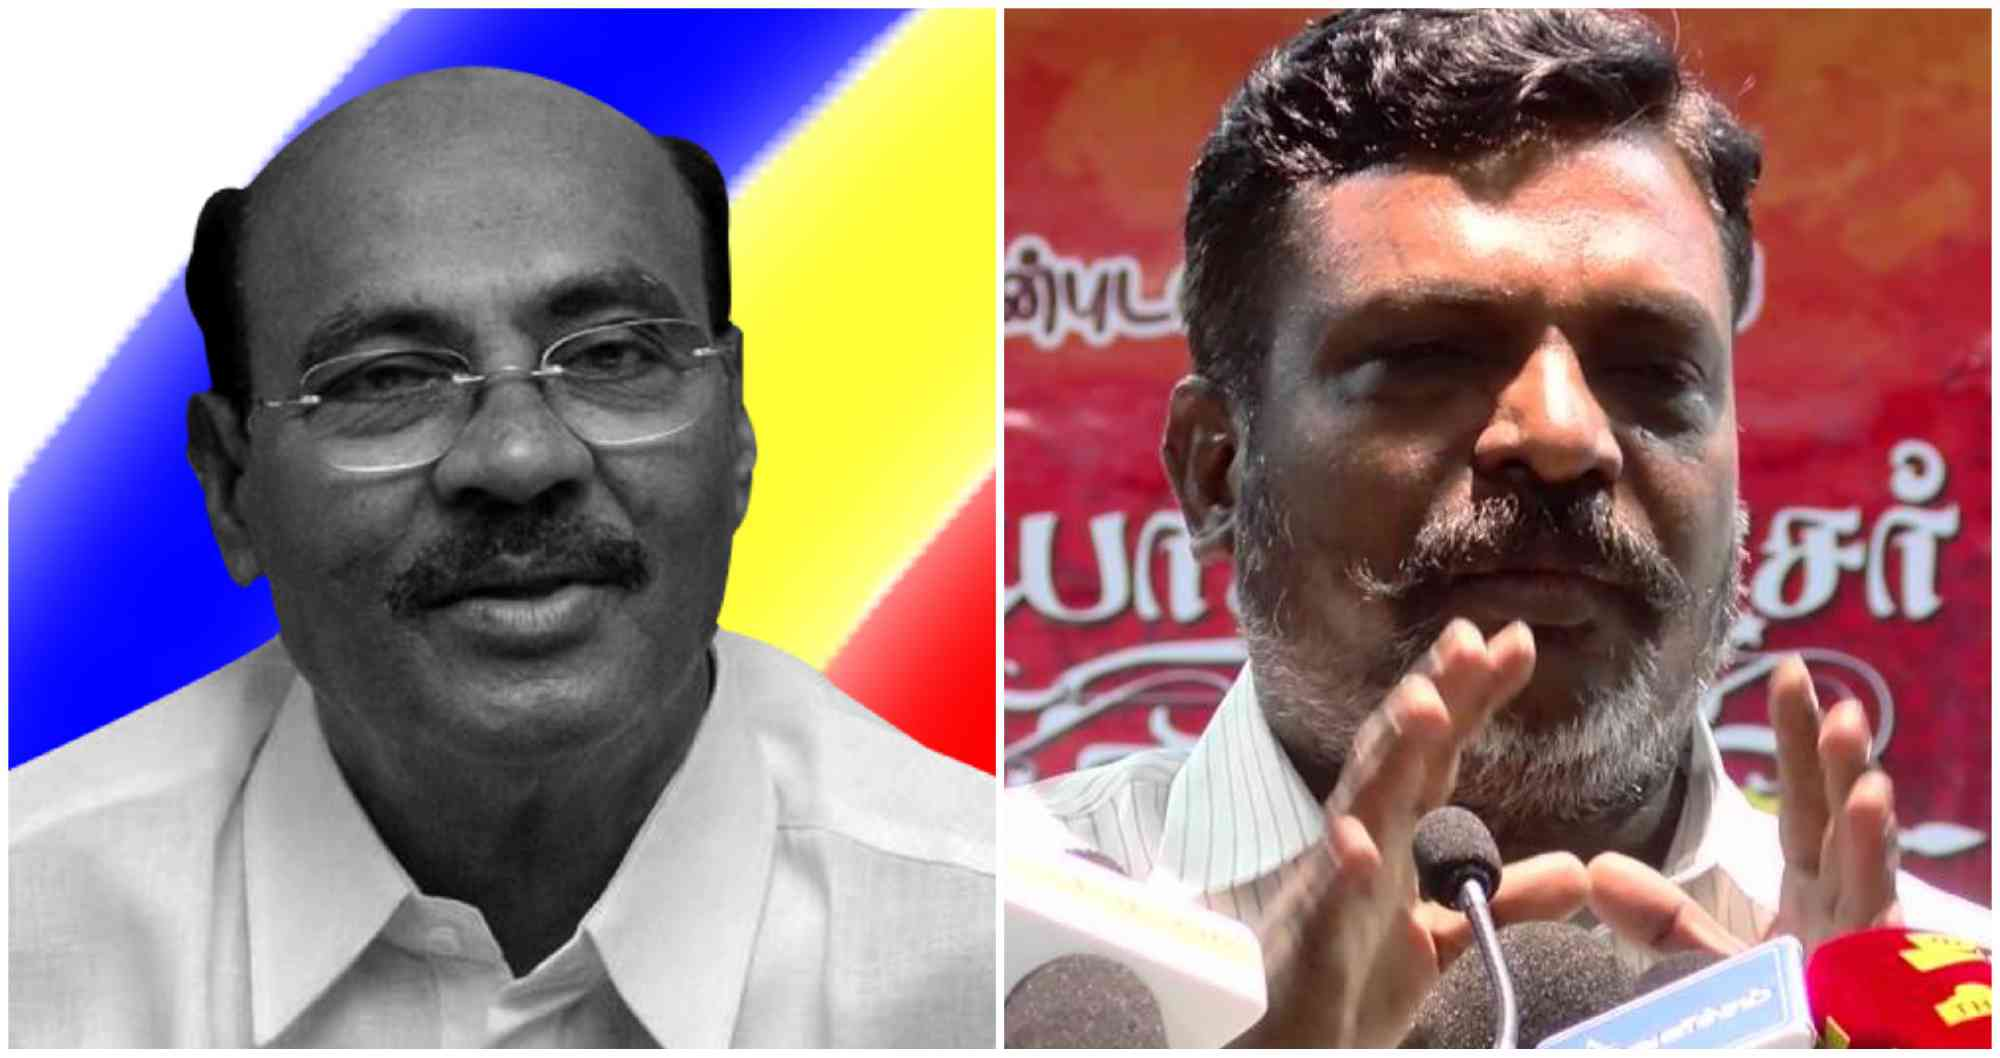 S Ramadoss (left) of the Pattali Makkal Katchi and Thol Thirumavalavan of the Viduthalai Chiruthaigal Katchi.